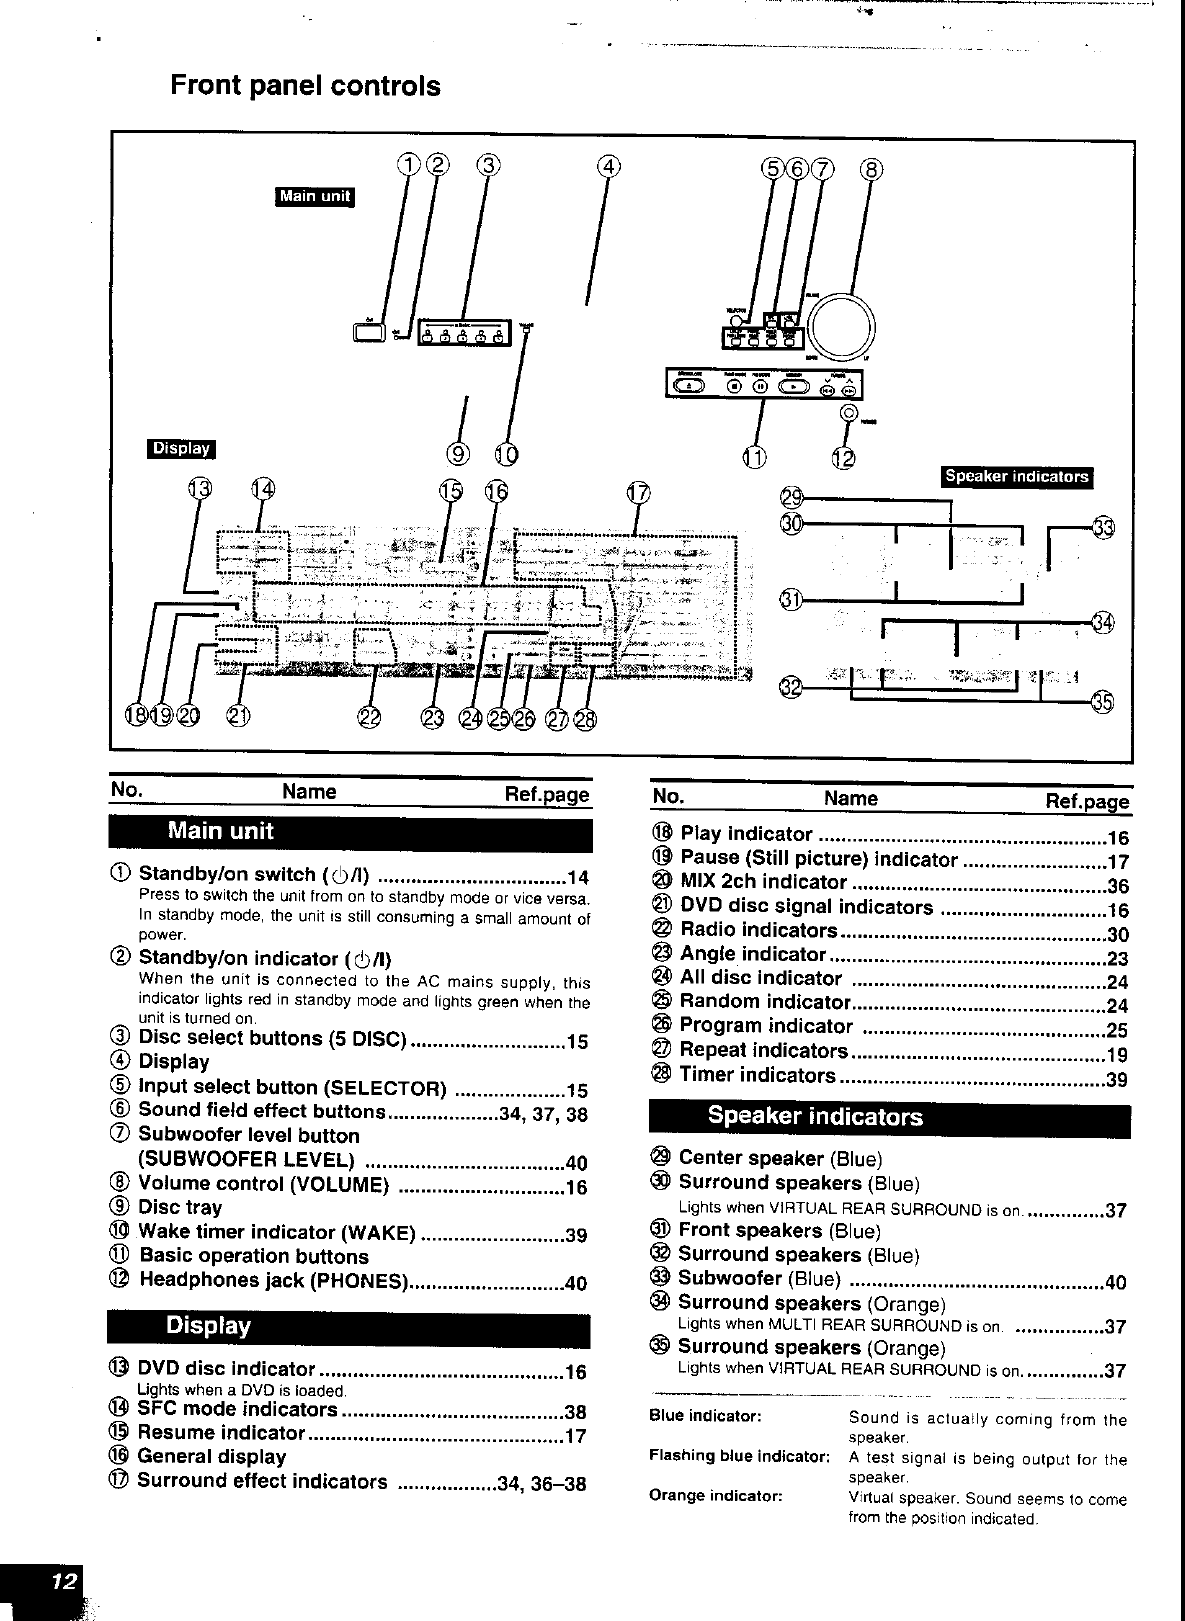 Page 12 of Panasonic Stereo System SC-HT80 User Guide